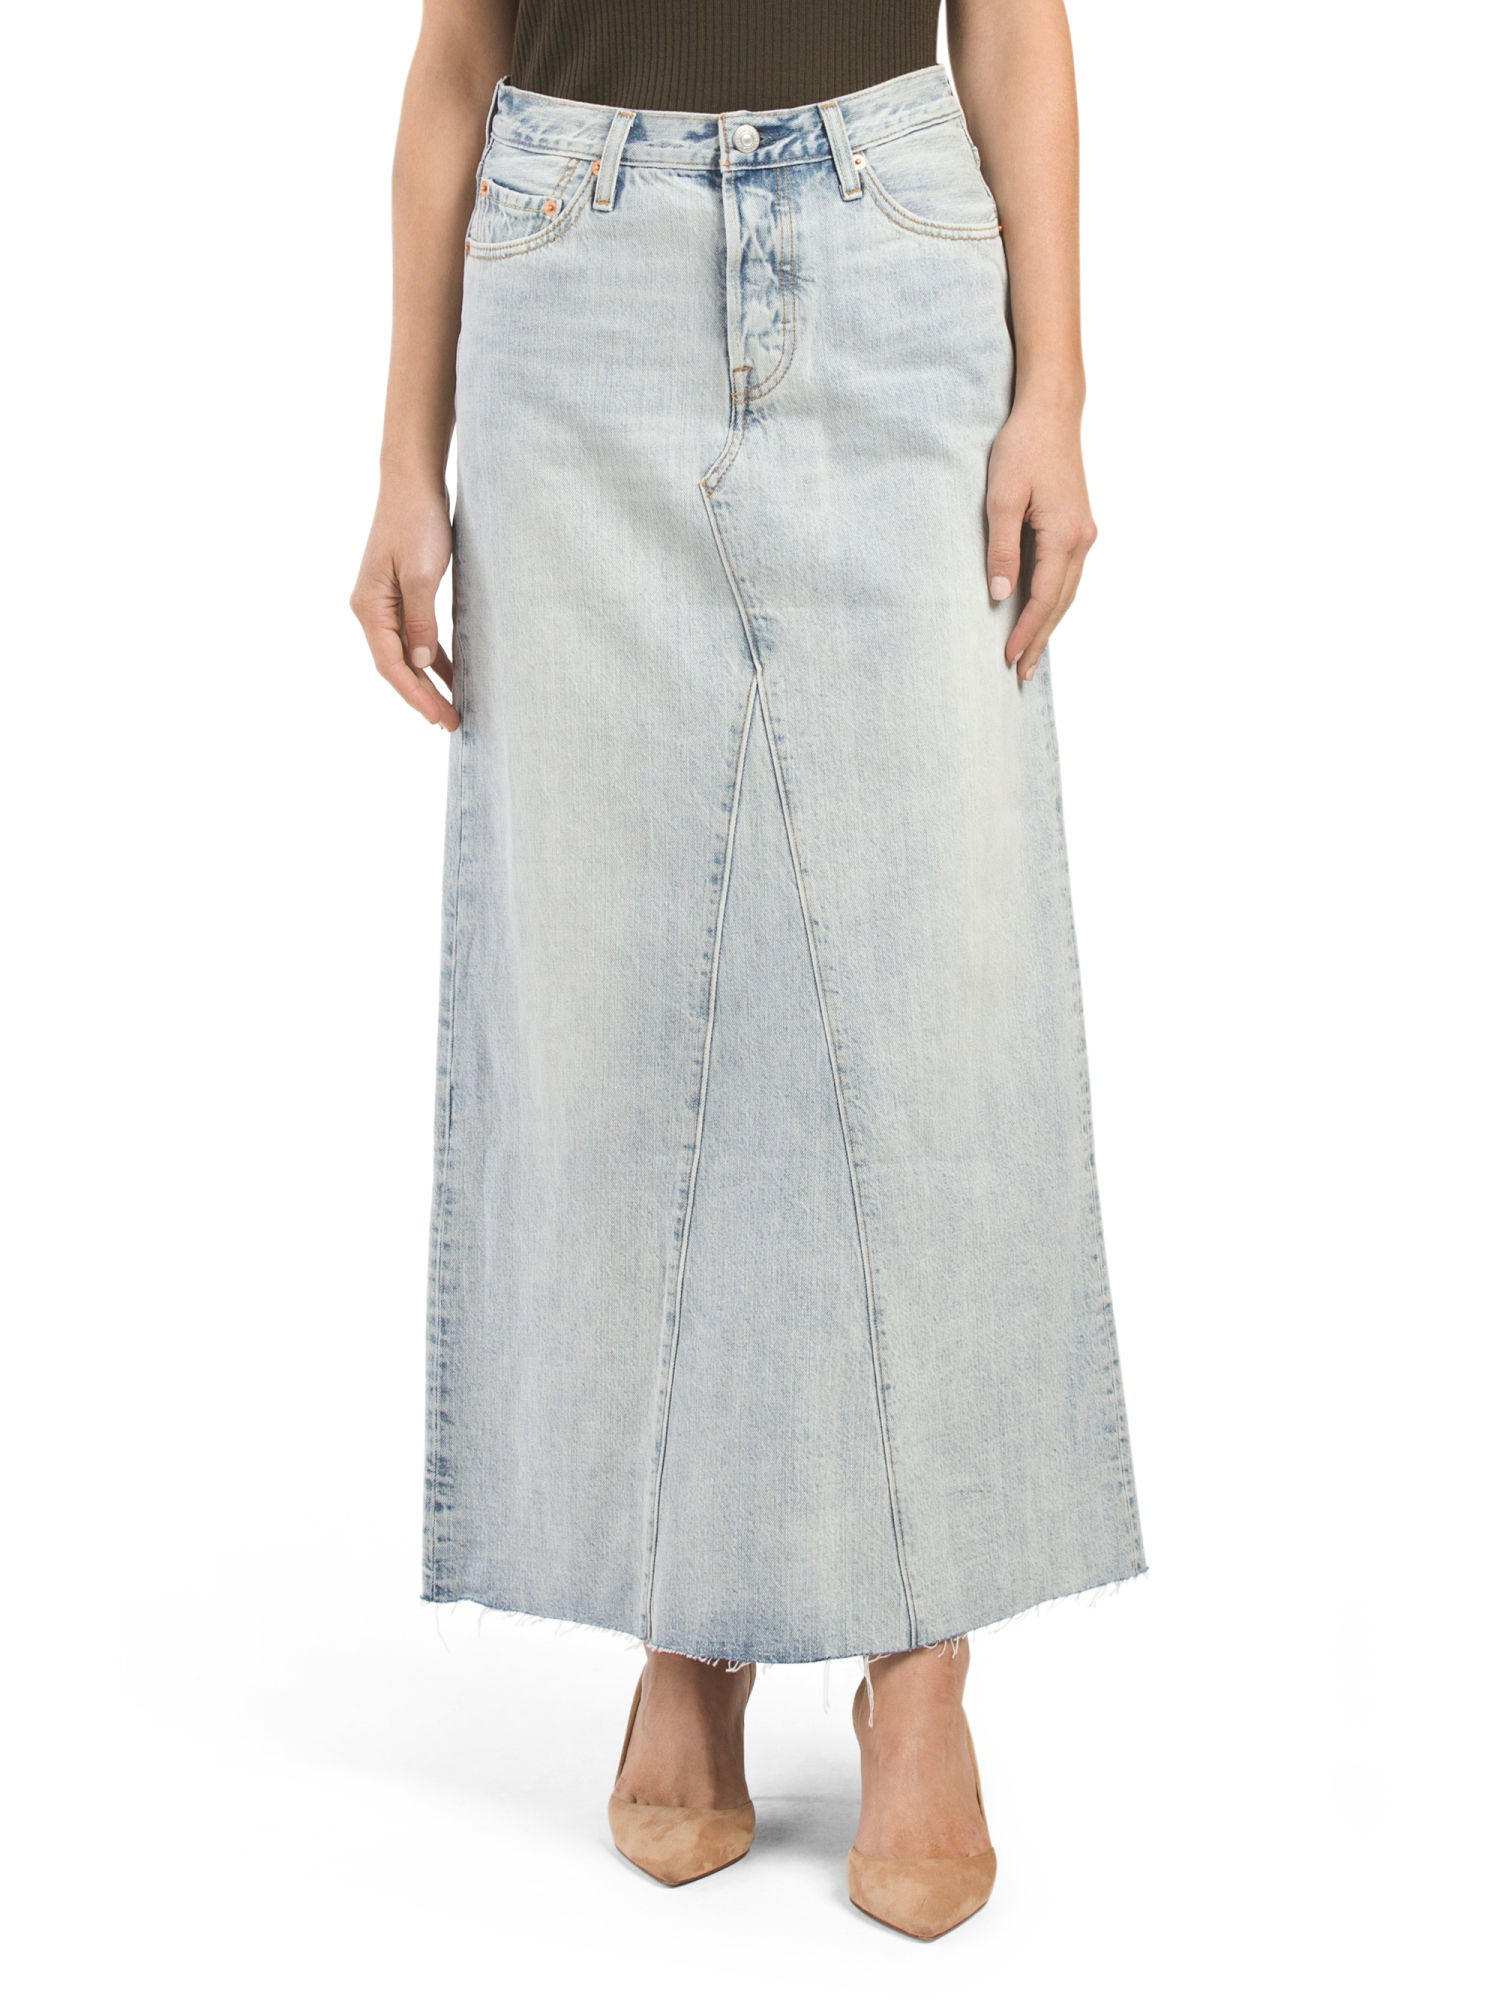 Long Levi denim skirts pictures images